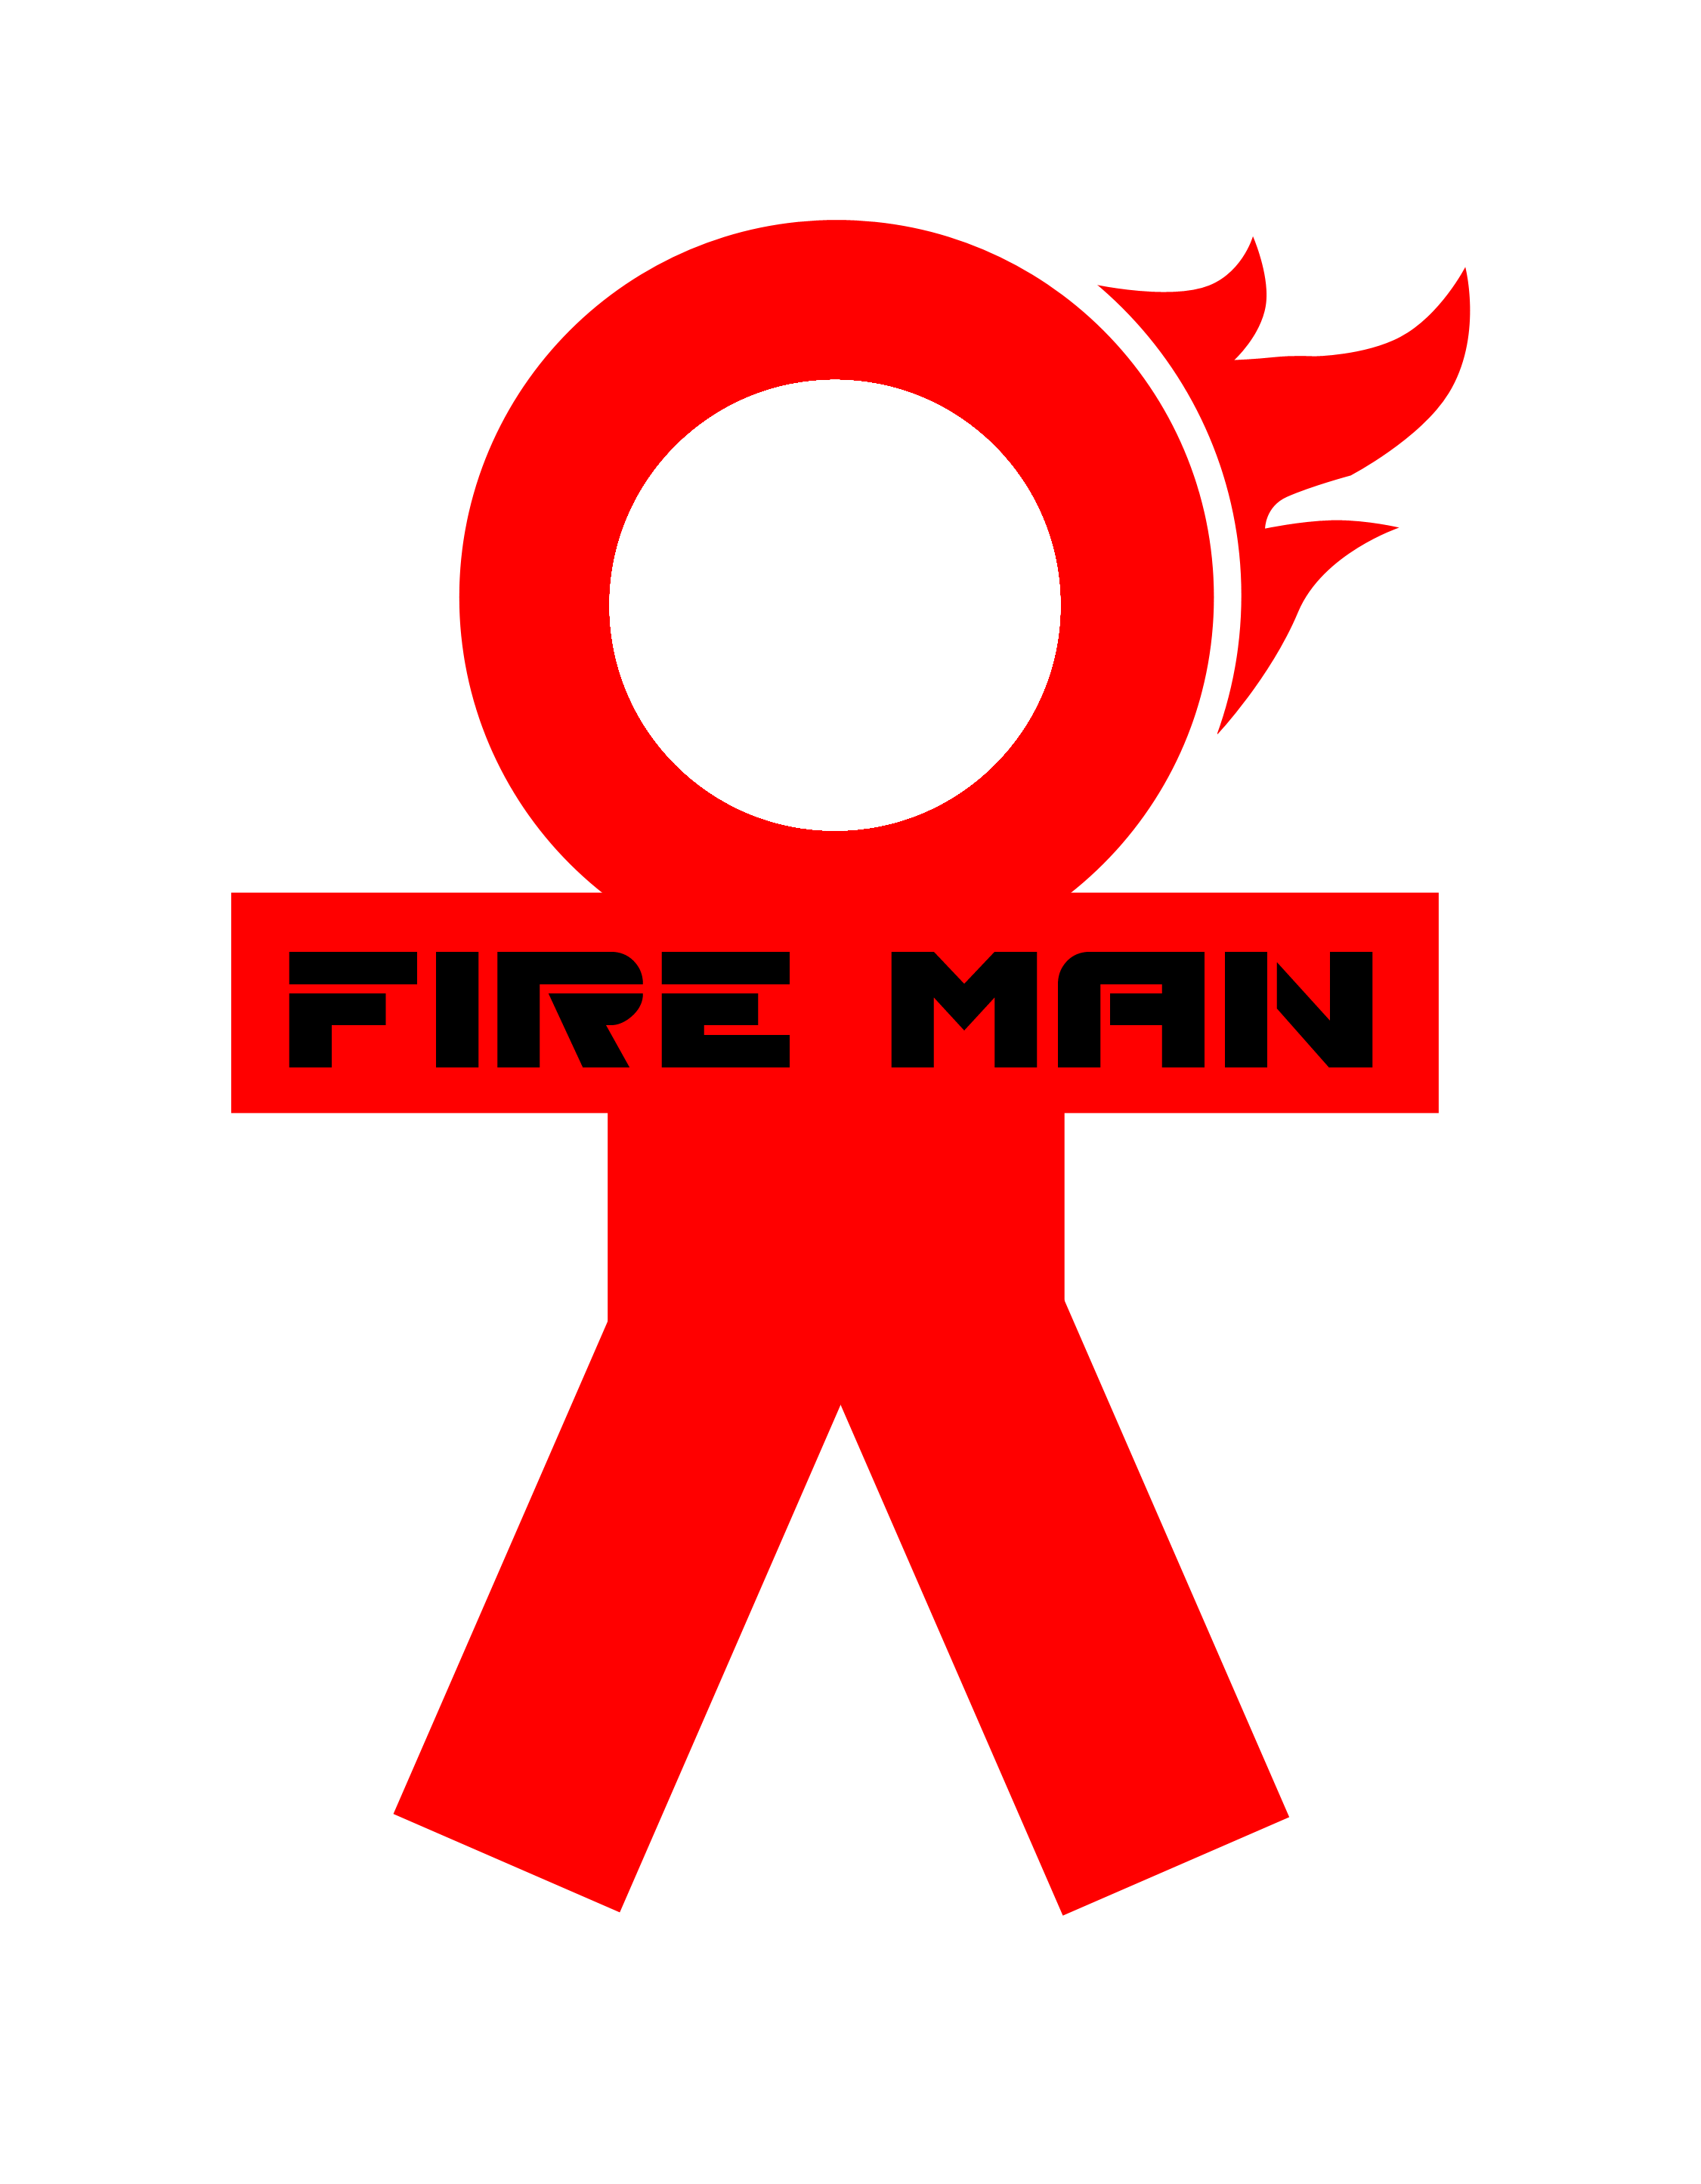 Pin Fireman Logo on Pinterest